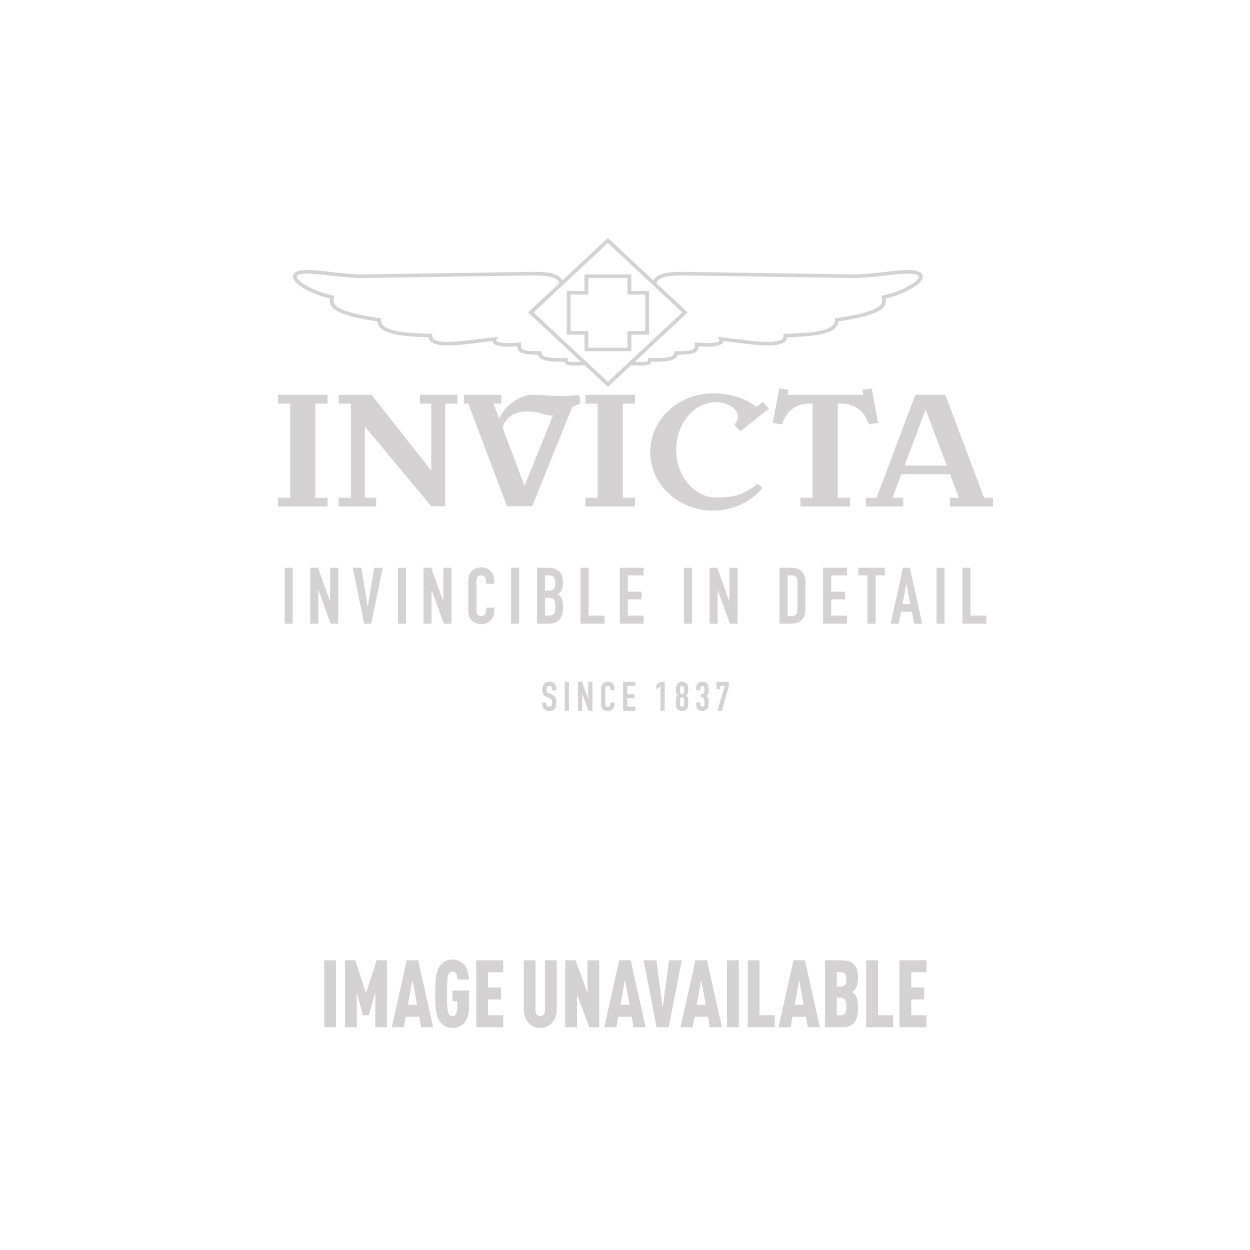 Invicta Cuadro Swiss Made Quartz Watch - Stainless Steel case Stainless Steel band - Model 1692